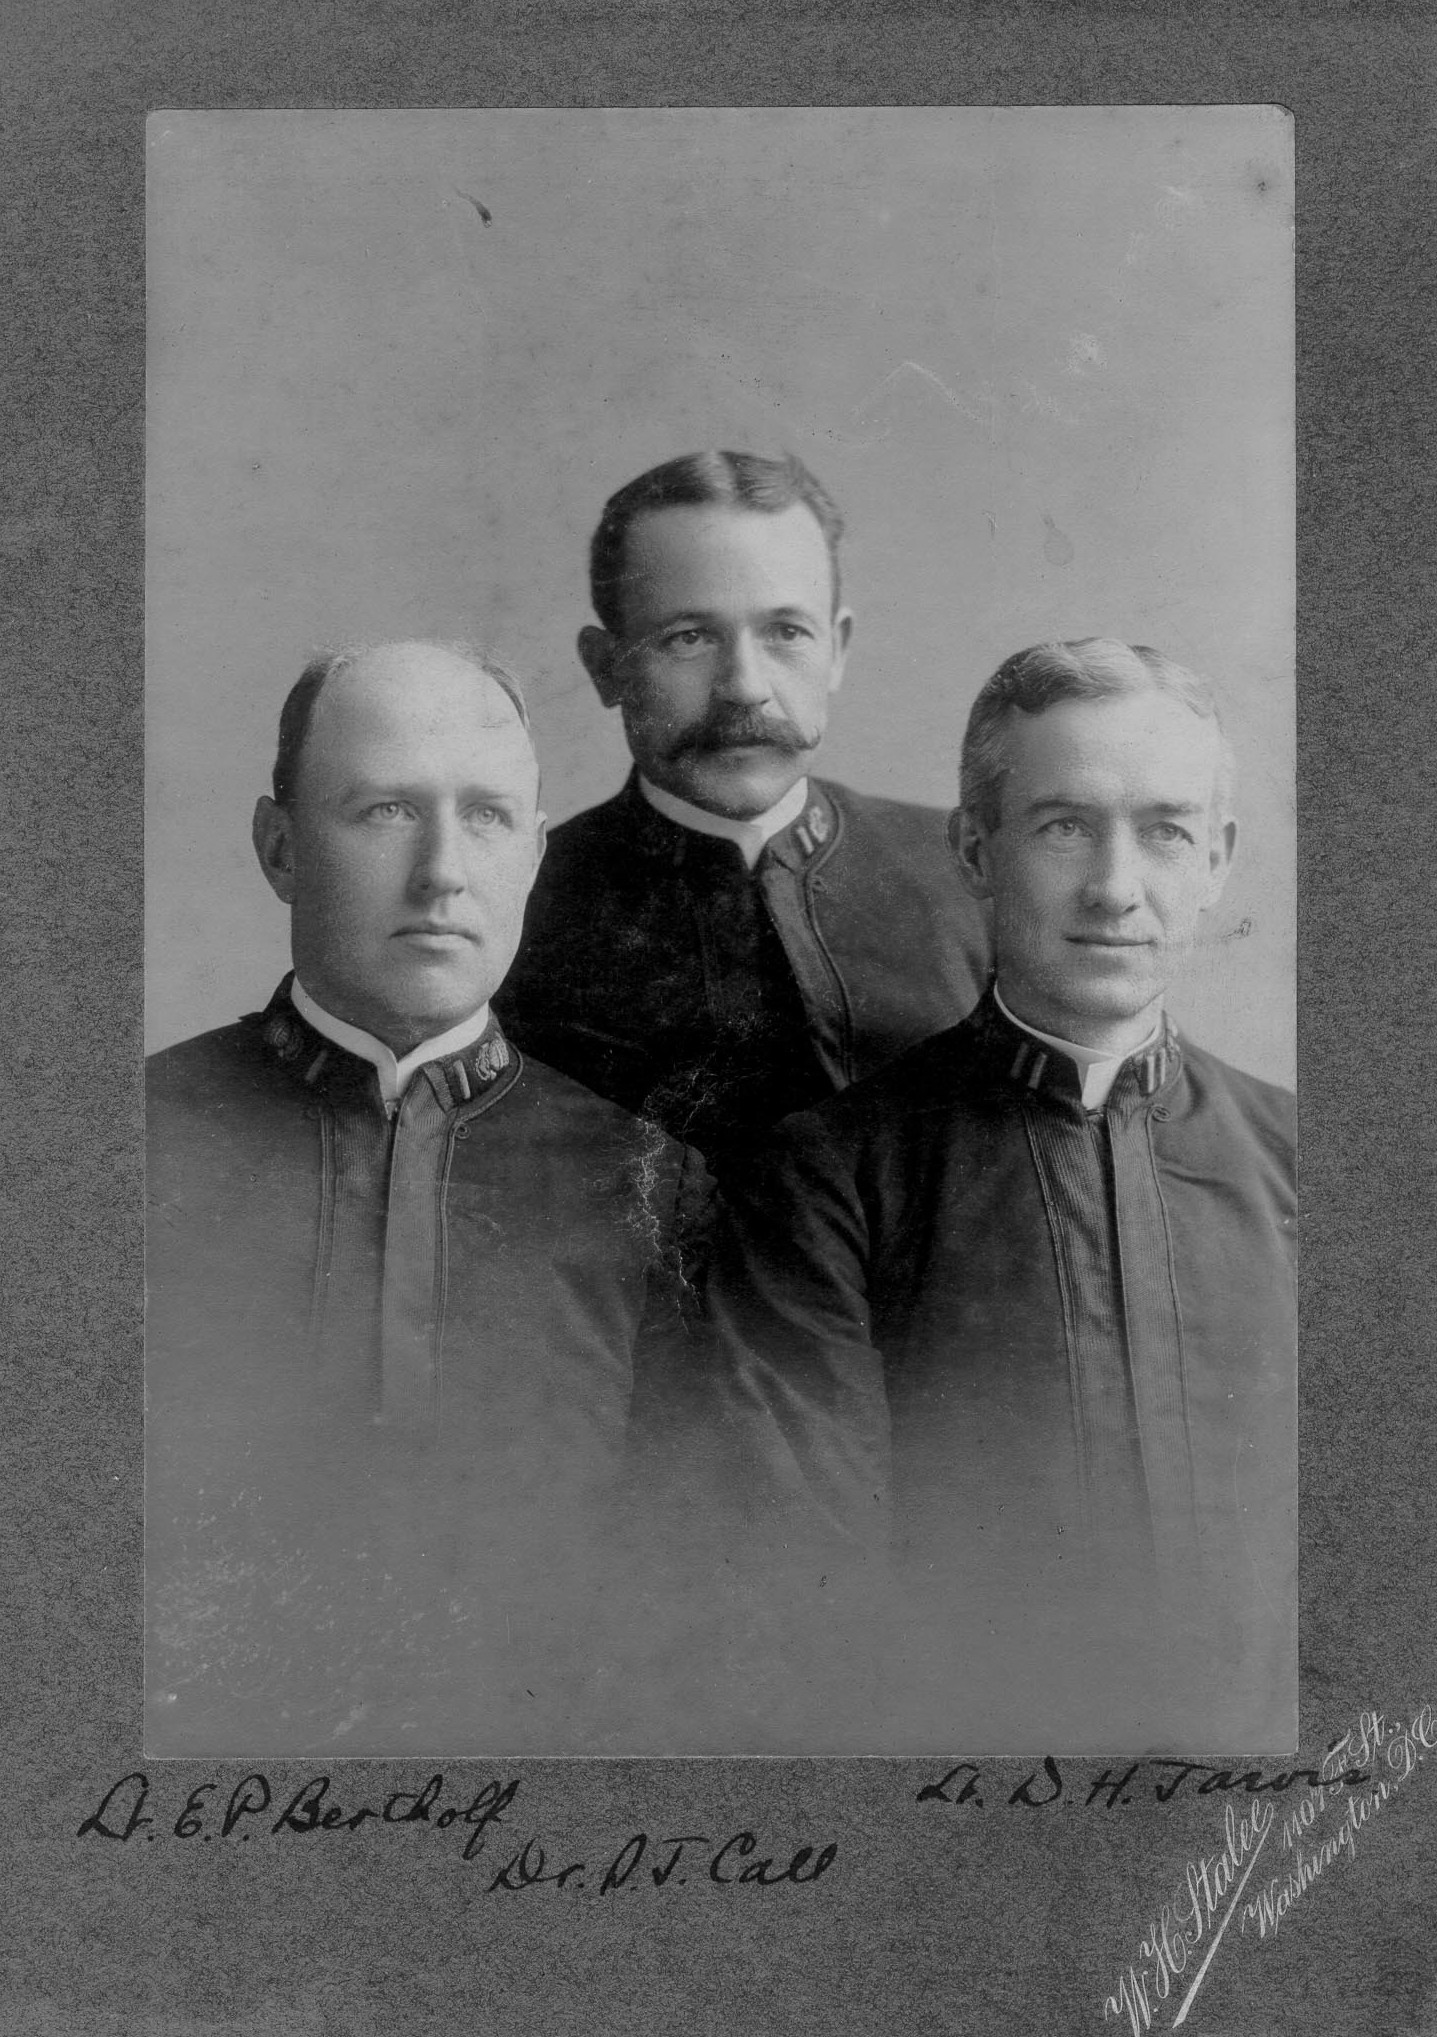 """The officers of the Overland Relief Expedition.  From left to right: """"Lt. E. P. Bertholf; Dr. S. J. Call; Lt. D. H. Jarvis.""""; no date/photo number; photo by W. H. Stalee [of] 1007 F. St., Washington, D.C."""""""